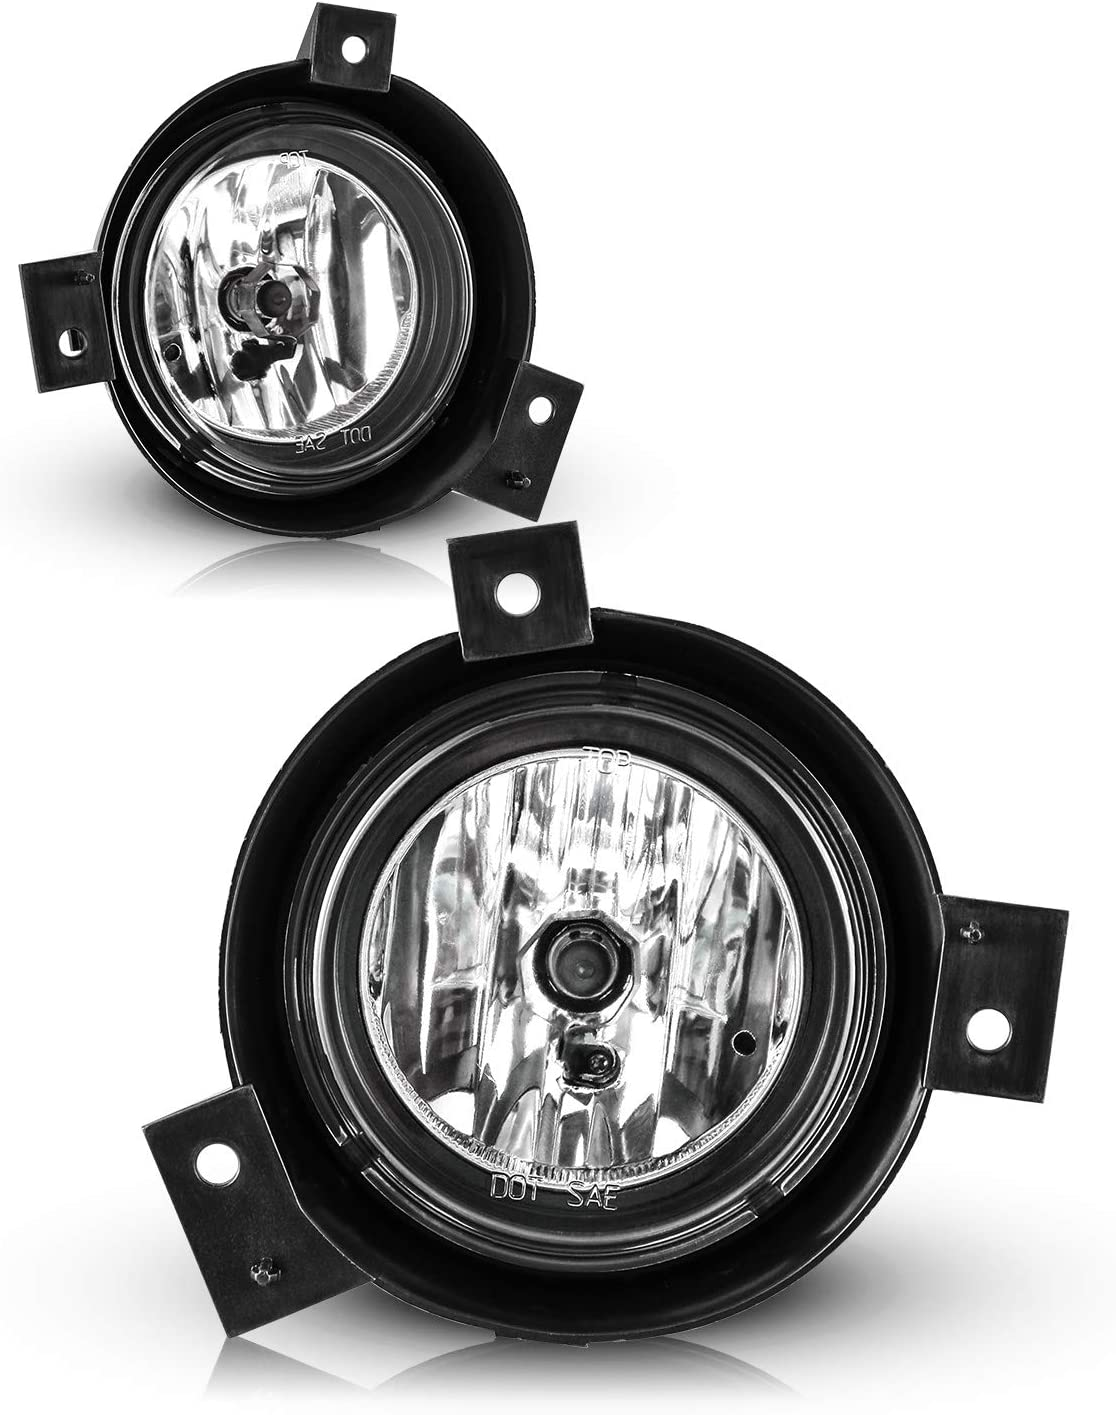 Fog Lights for 2001-2003 FORD Ranger with Bulbs H10 12V 42W AUTOFREE OEM Driving Lamps Replacement-1 Pair Clear Lens